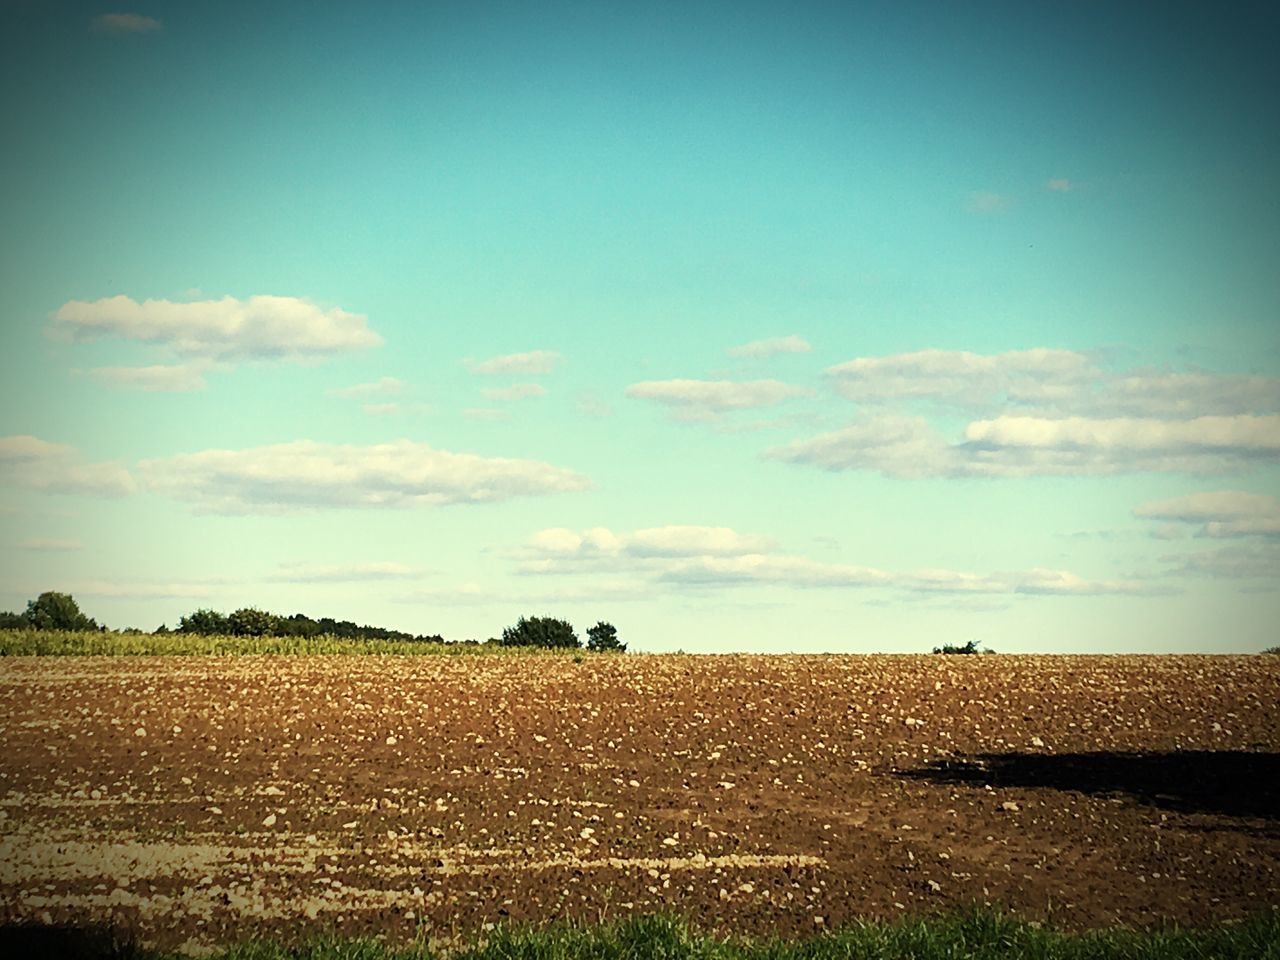 Landwirtschaftsromantik Landscape Beauty In Nature Farm Agriculture Field Sky Outdoors Day Countryside Cultivated Land